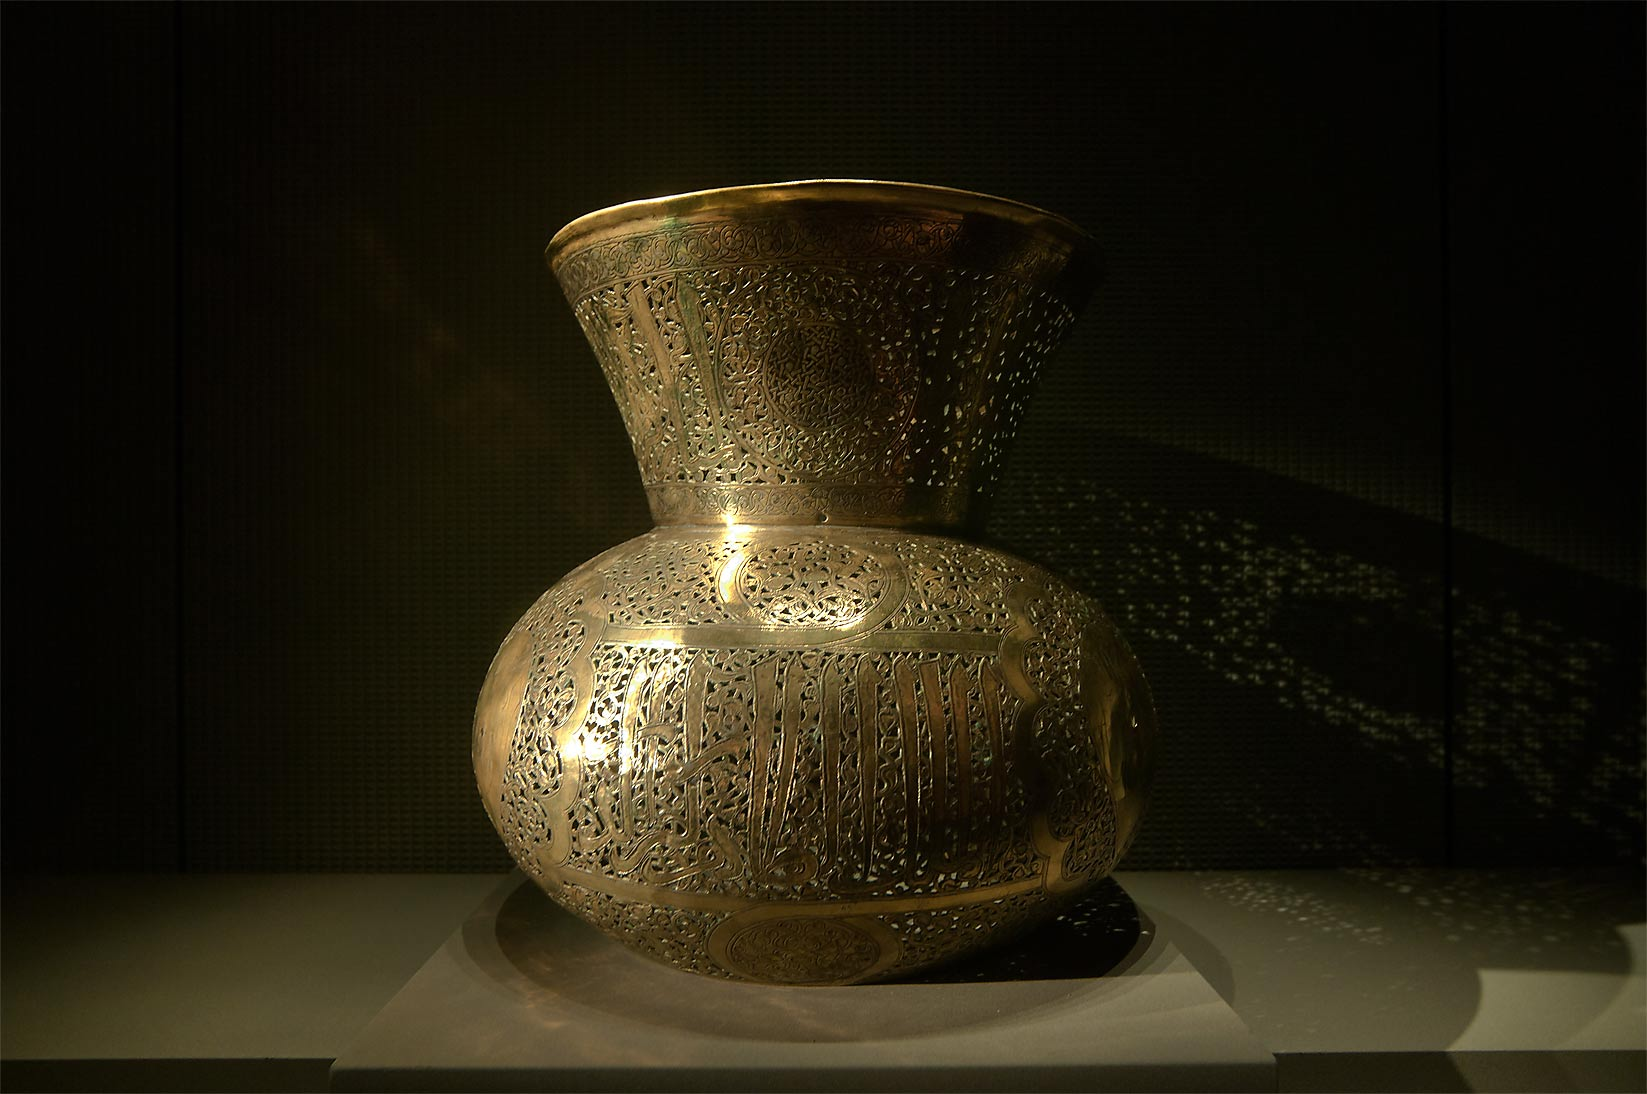 Pierced metalwork of brass mosque lamp (Damasqus...in Museum of Islamic Art. Doha, Qatar